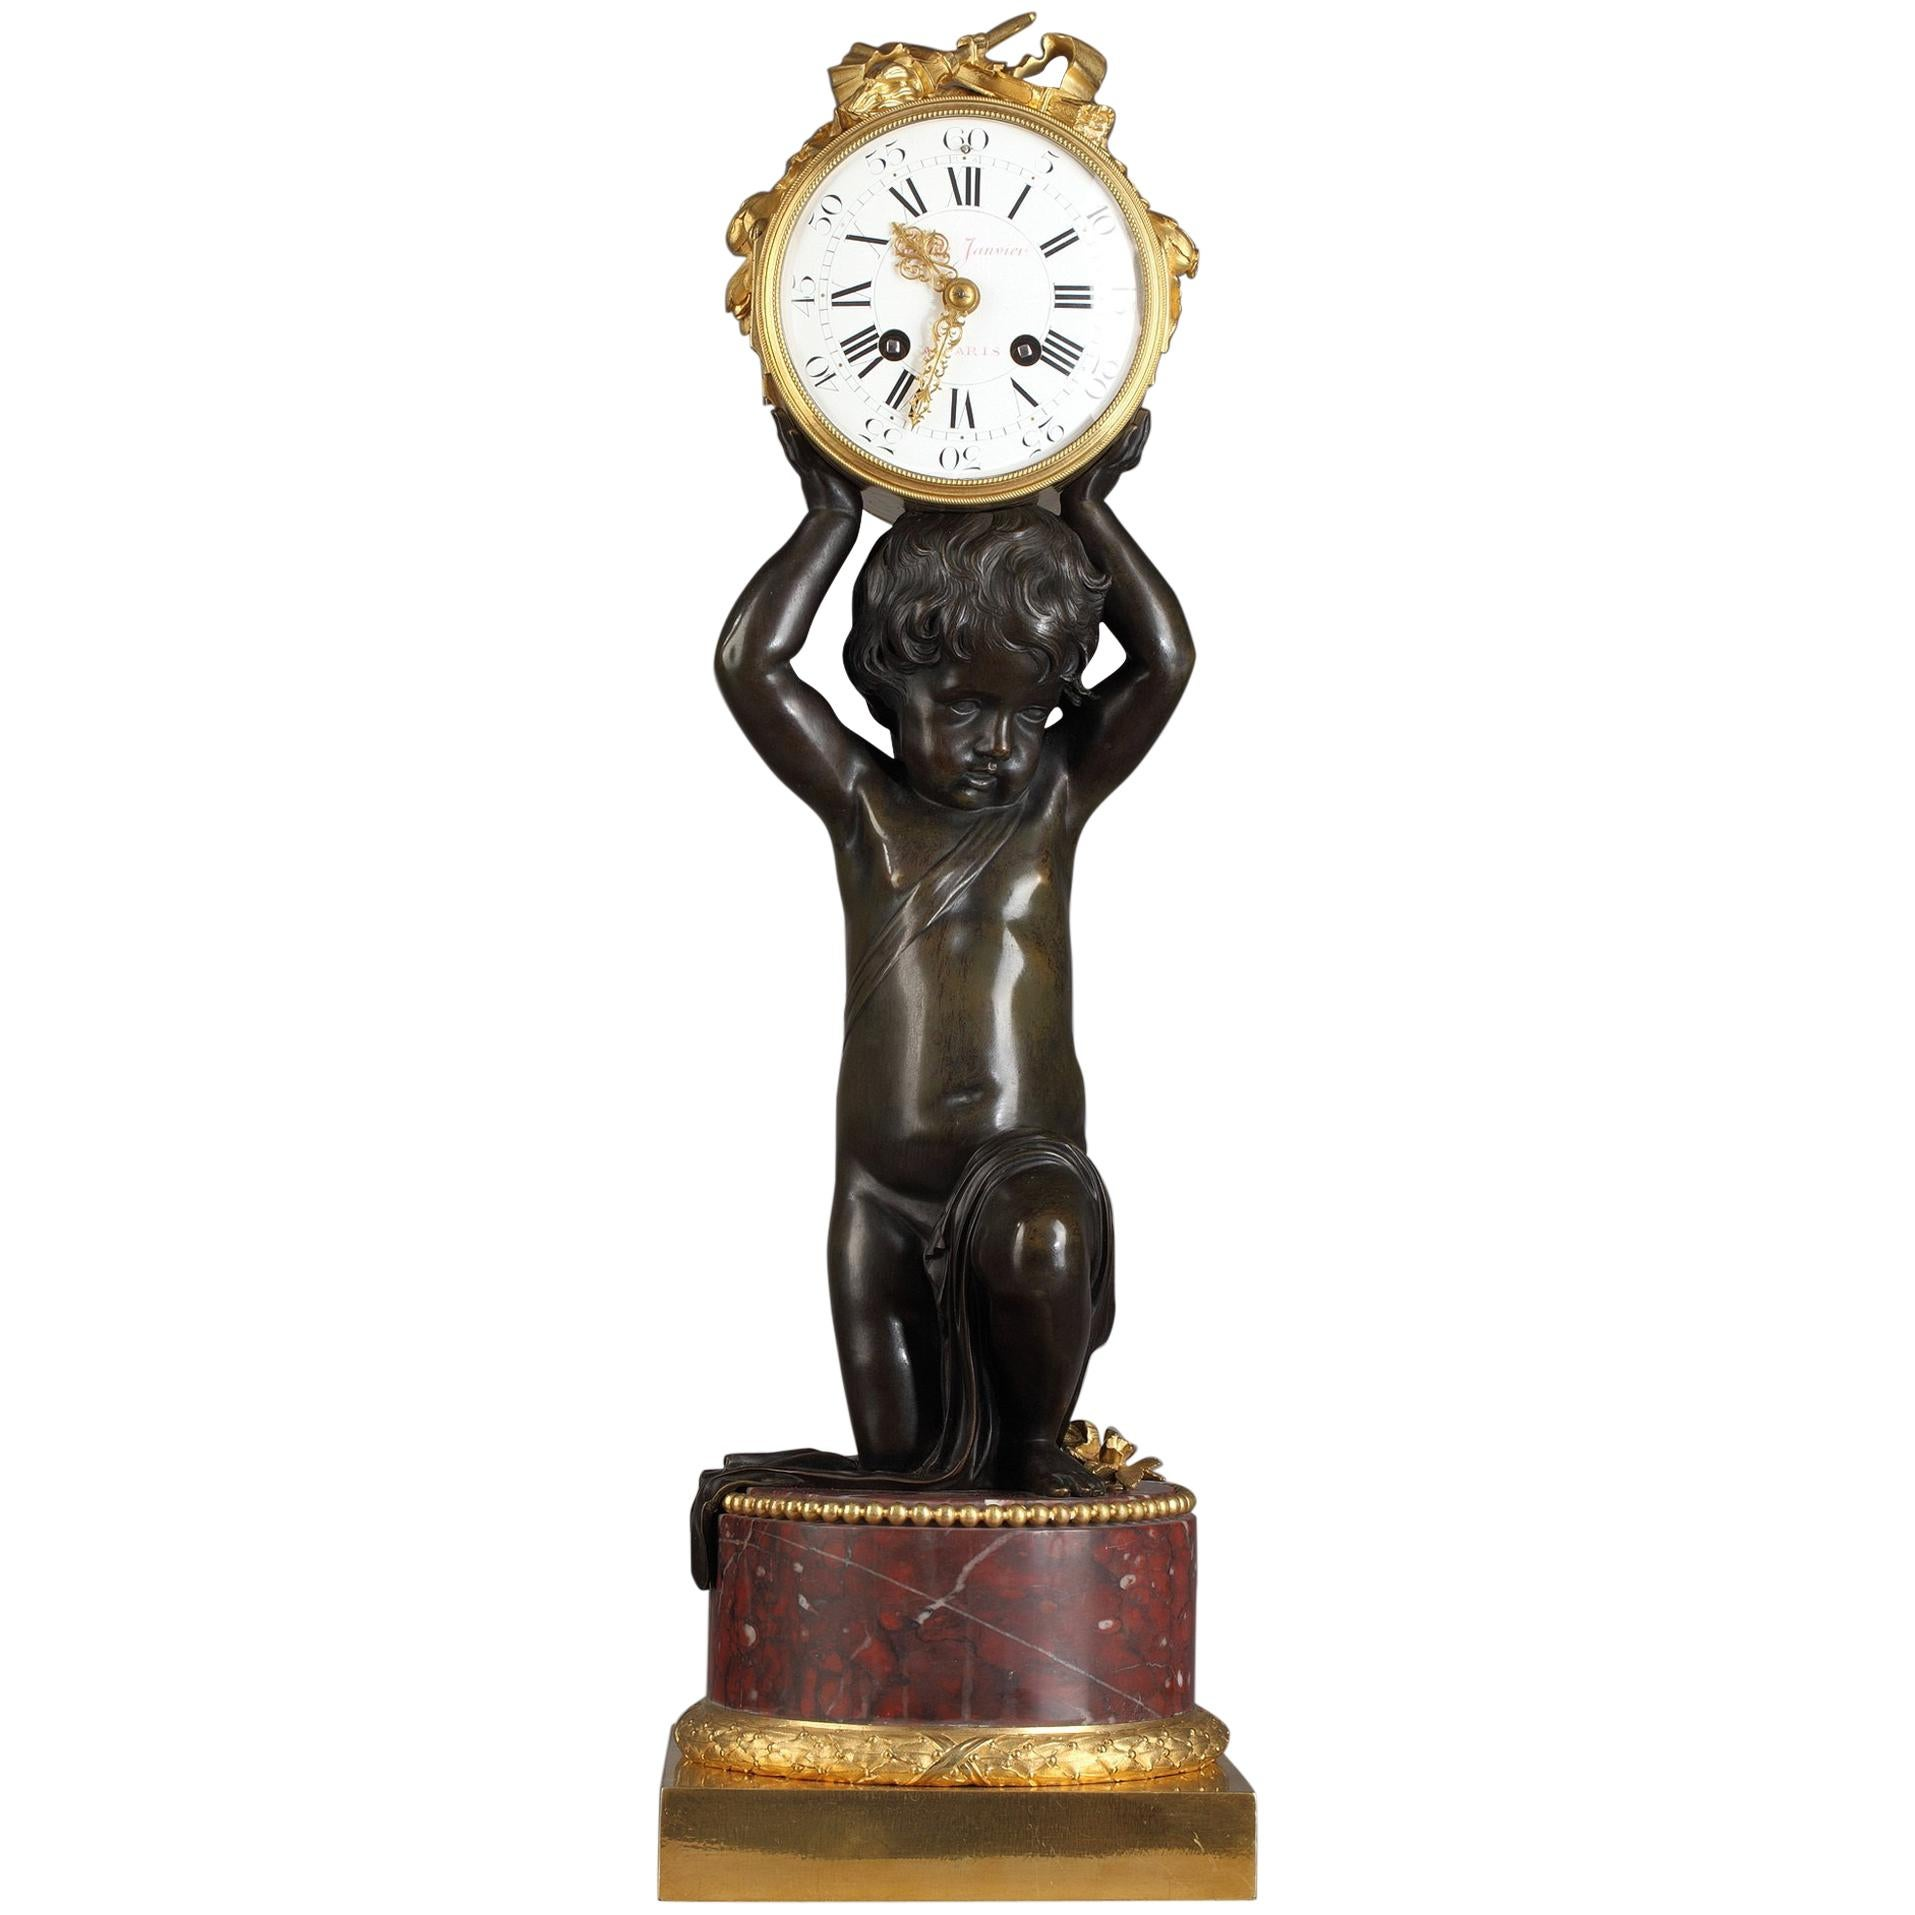 Beautiful Patinated and Gilded Bronze Clock by E. Hazart, France, Circa 1880